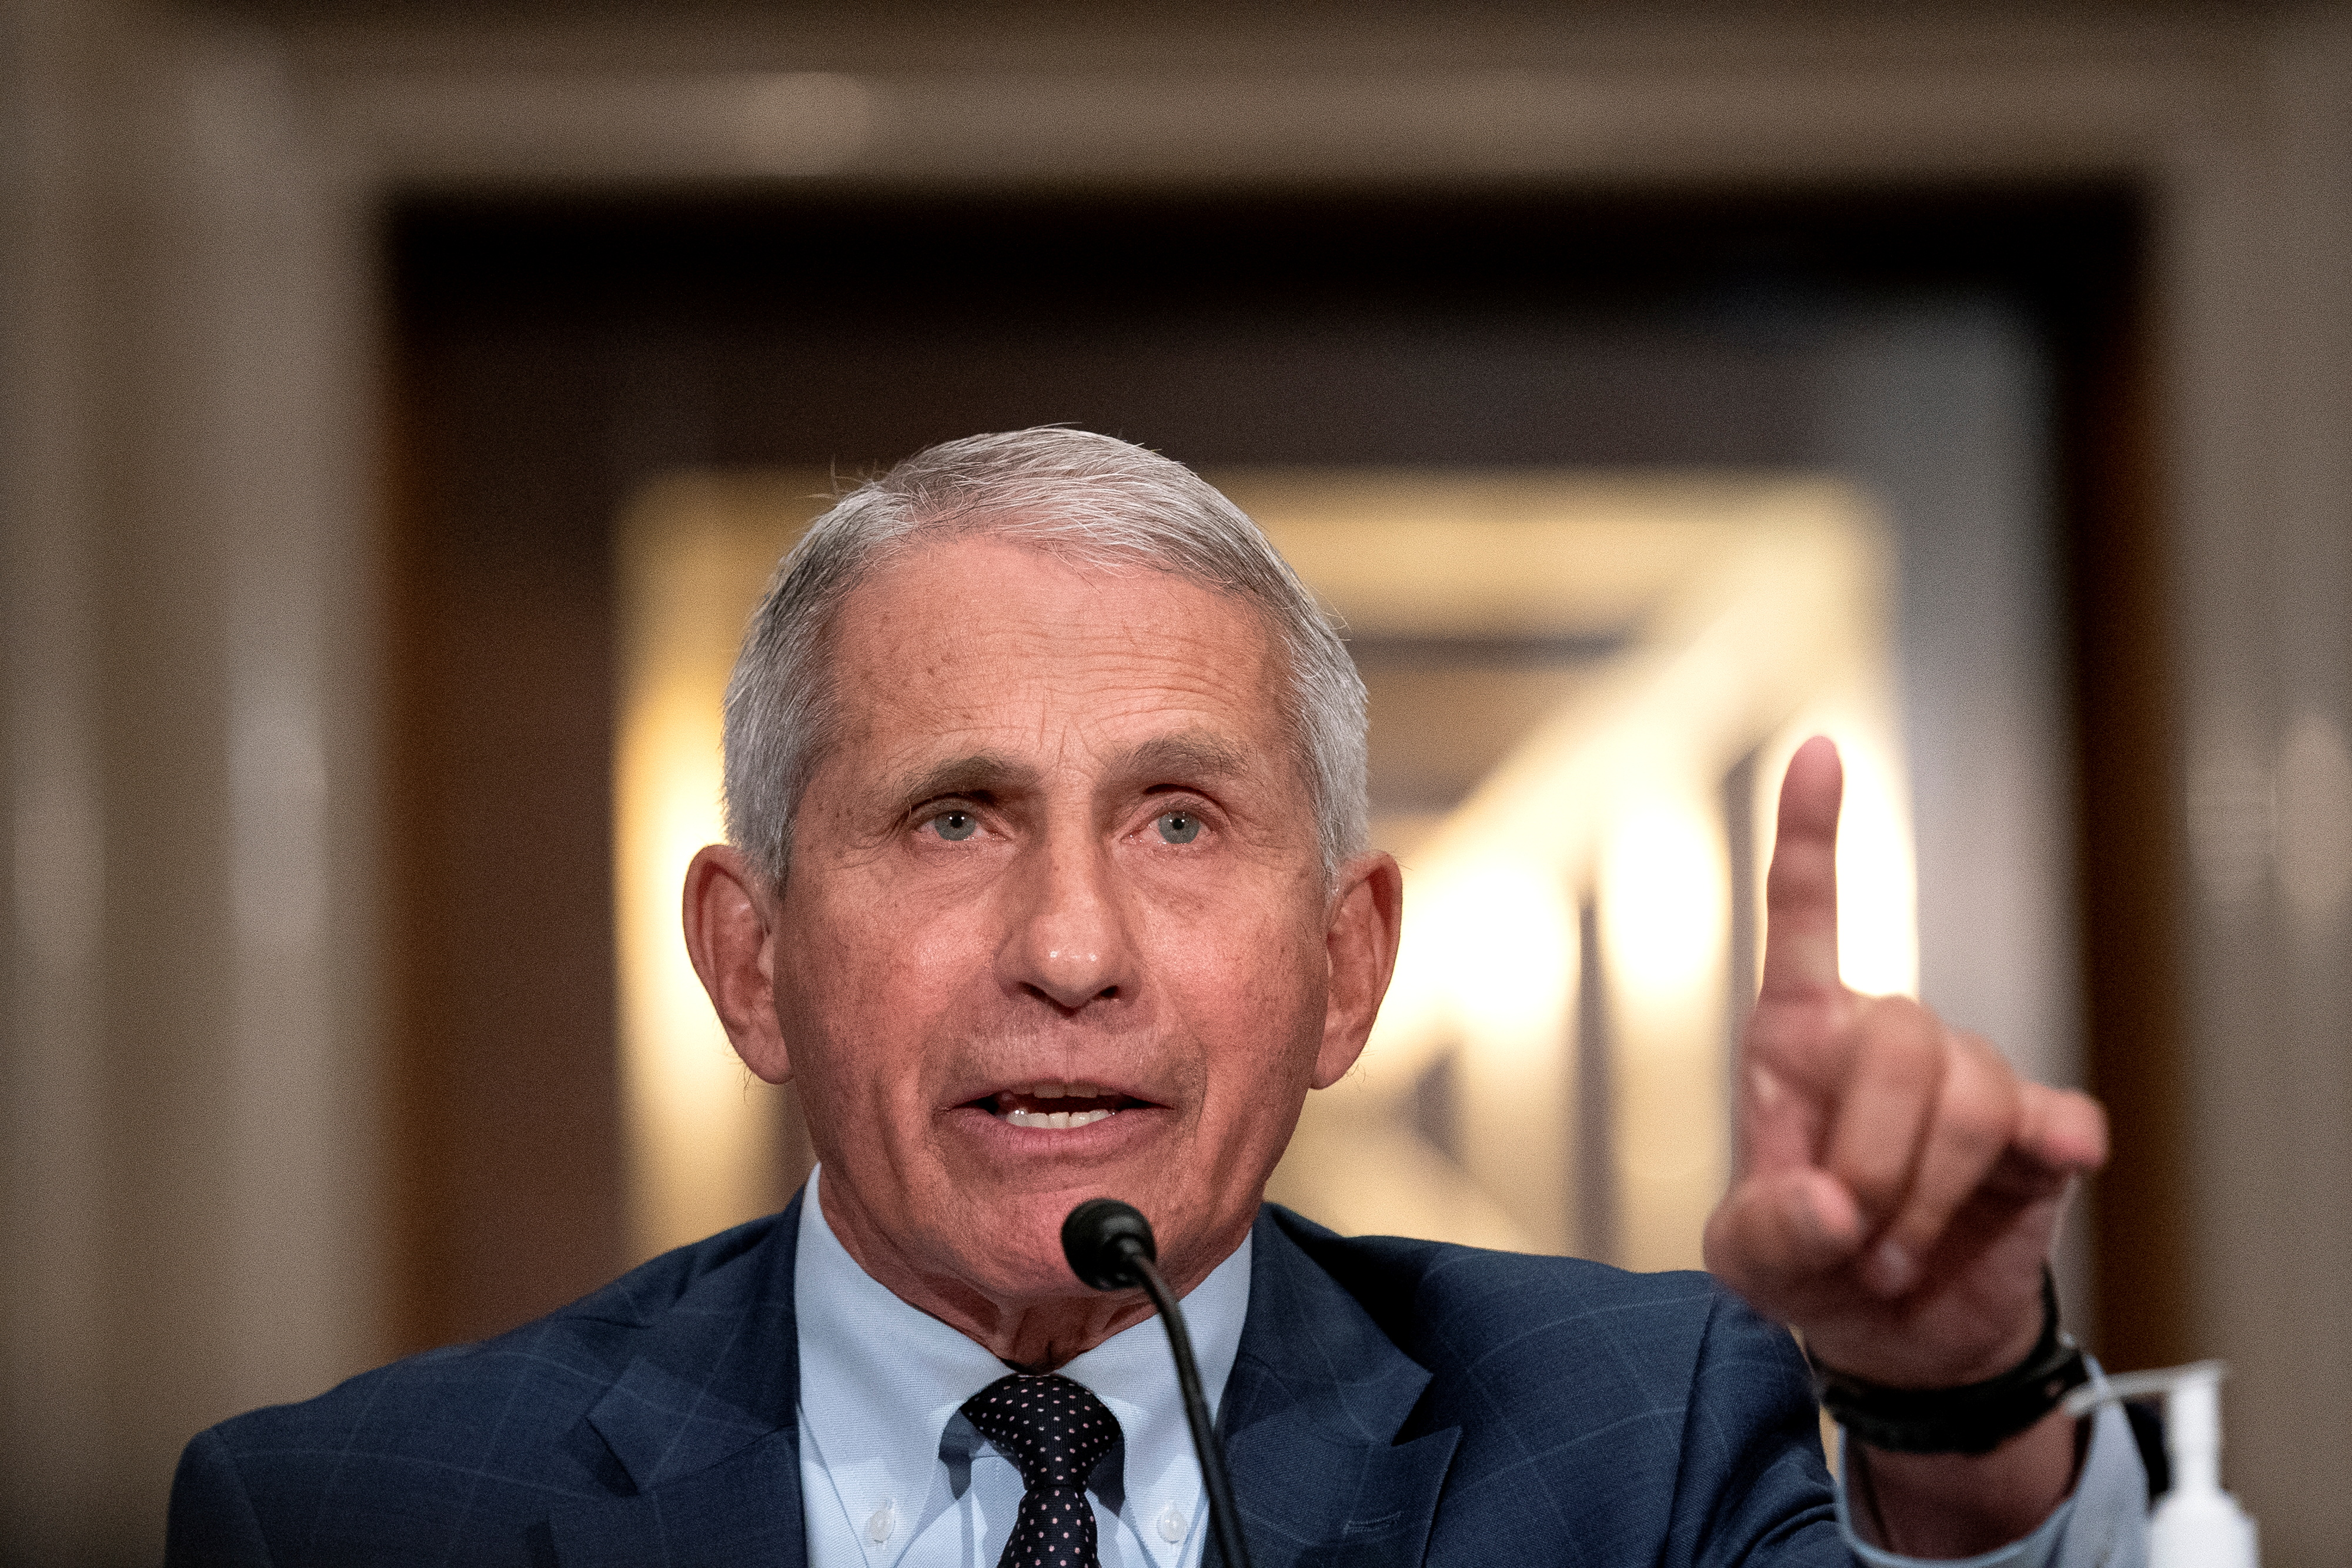 Dr. Anthony Fauci, director of the National Institute of Allergy and Infectious Diseases, speaks during a Senate Health, Education, Labor, and Pensions Committee hearing at the Dirksen Senate Office Building in Washington, D.C., U.S., July 20, 2021. Stefani Reynolds/Pool via REUTERS